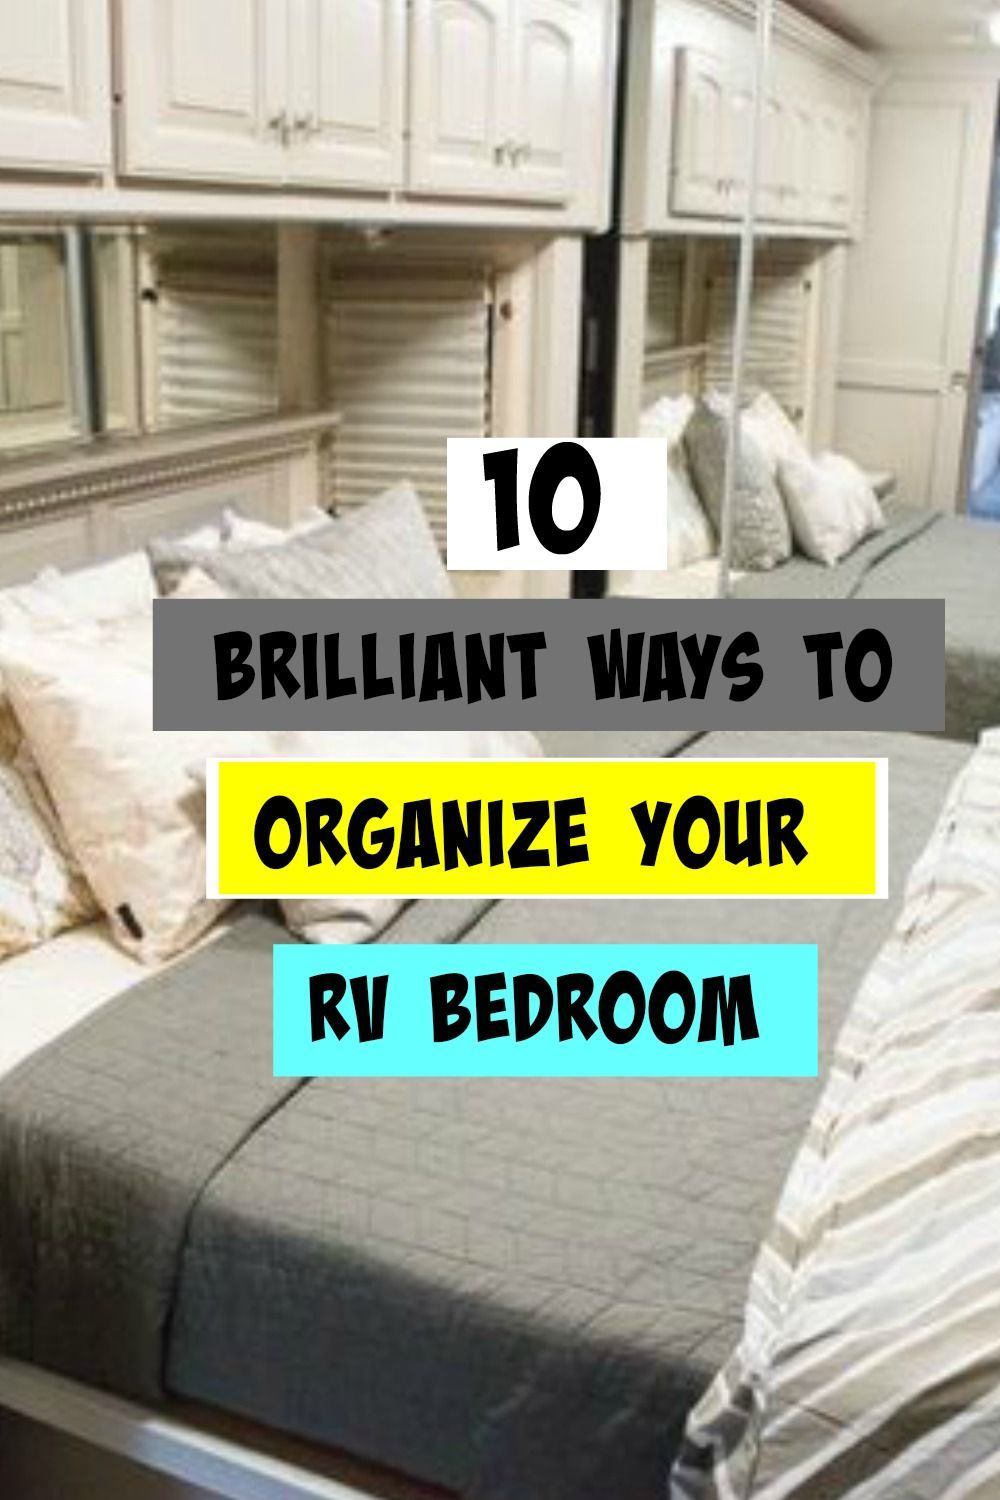 12 Clever Ways To Organize Your RV Bedroom in 12  Travel